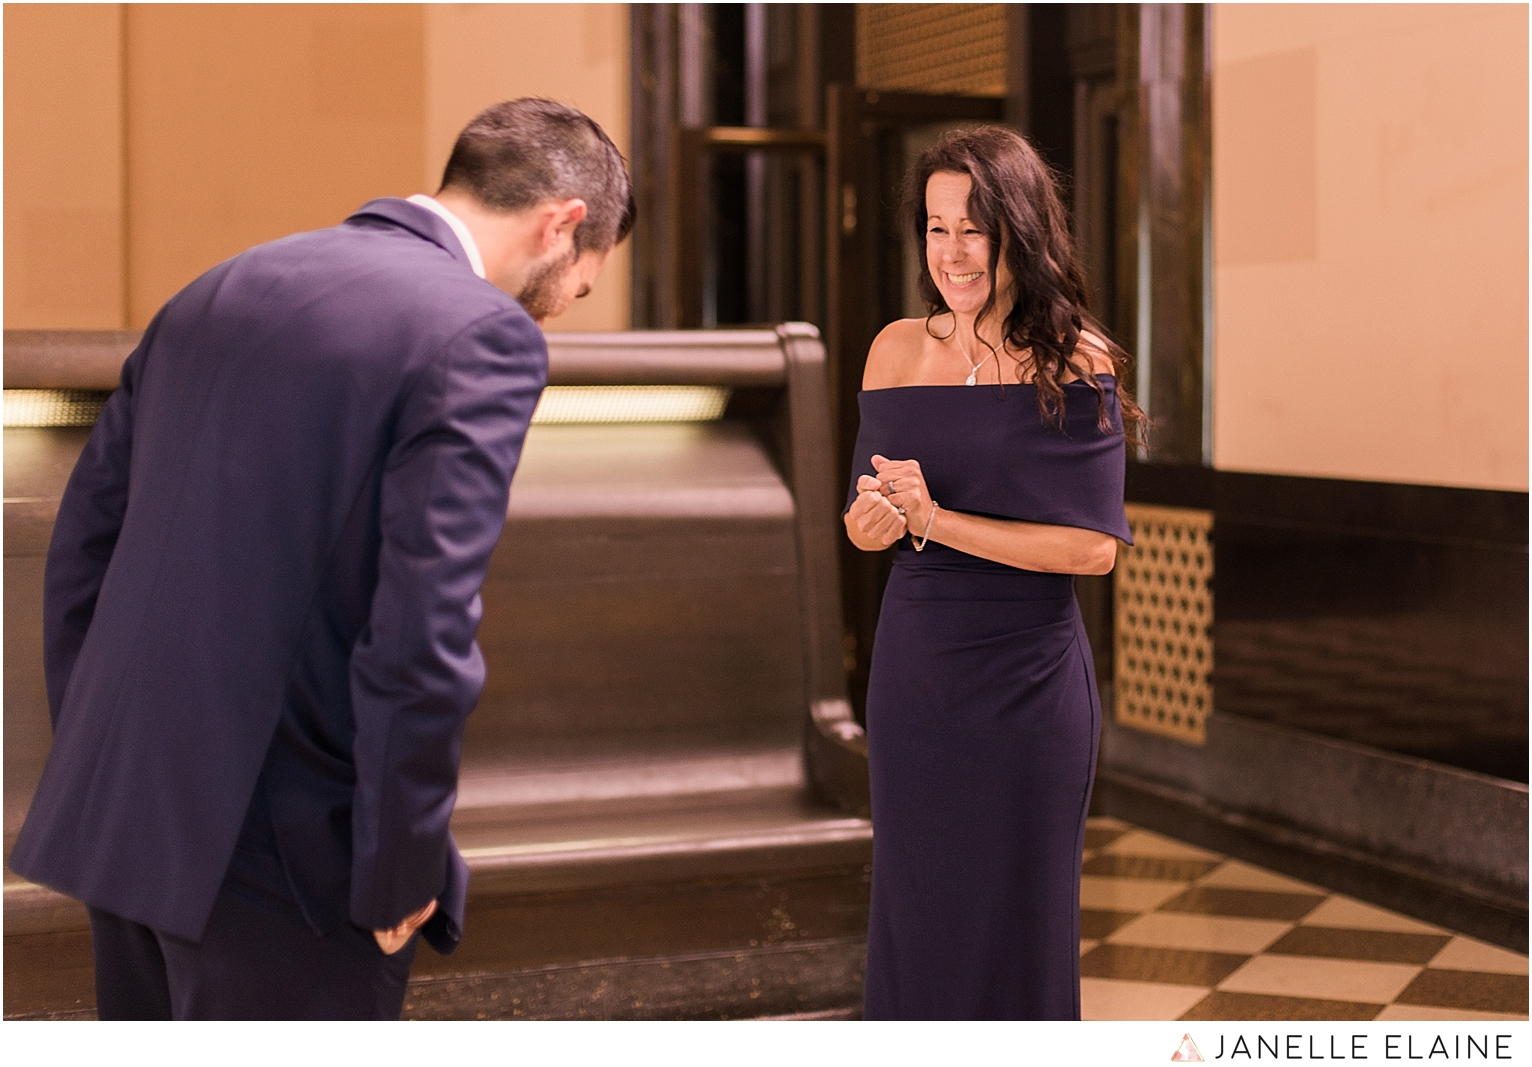 seattle wedding photographers-durham museum-wedding-omaha ne-destination-wedding-photographers-janelle elaine-midwest bride-6.jpg